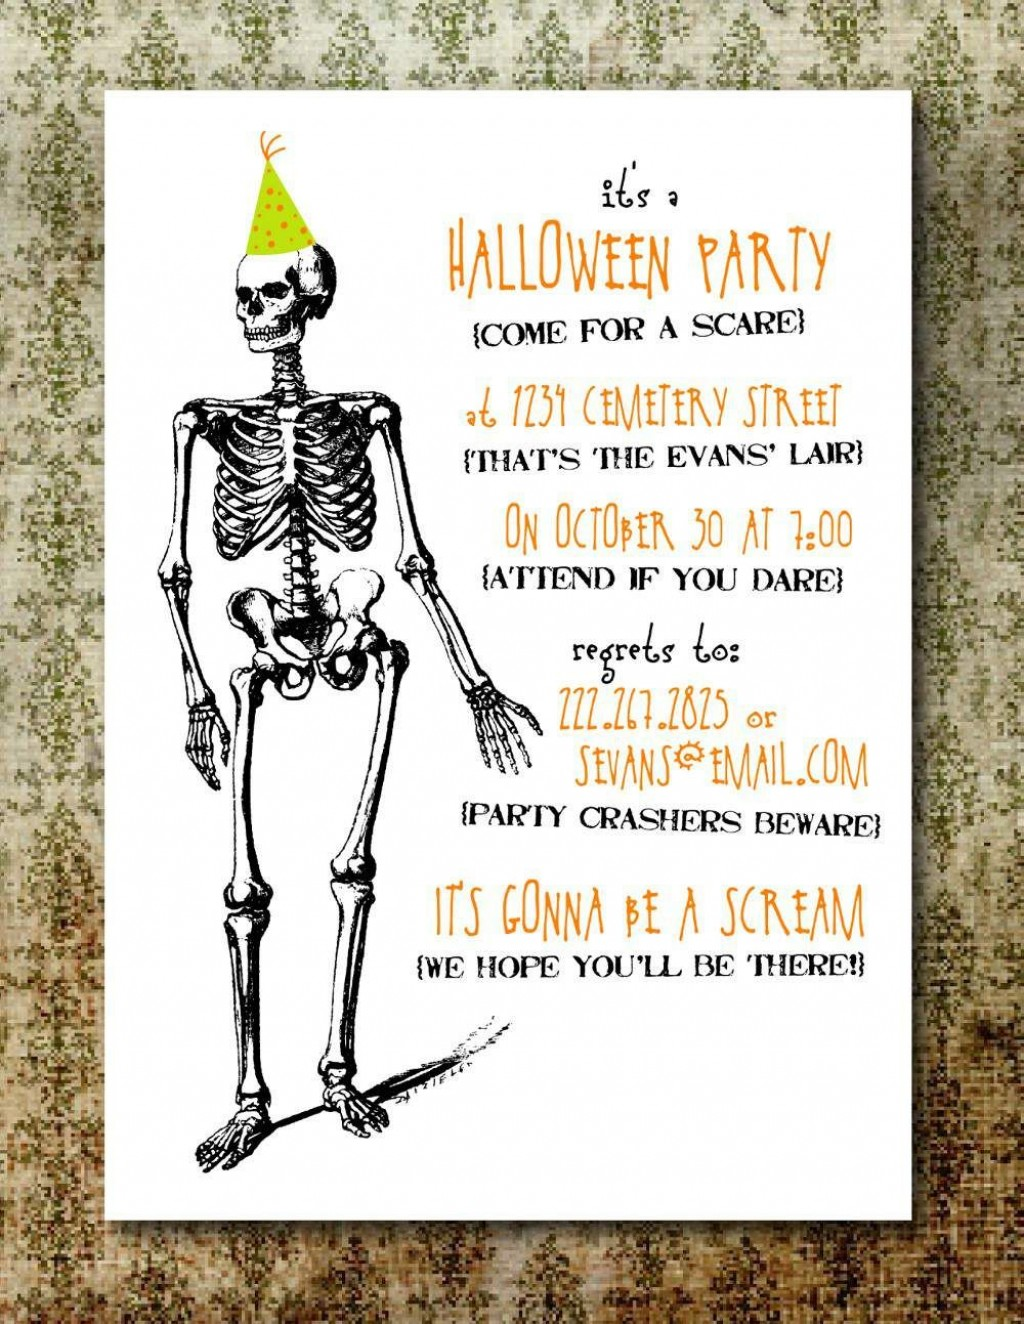 004 Rare Free Halloween Party Invitation Template Design  Printable Birthday For Word DownloadLarge